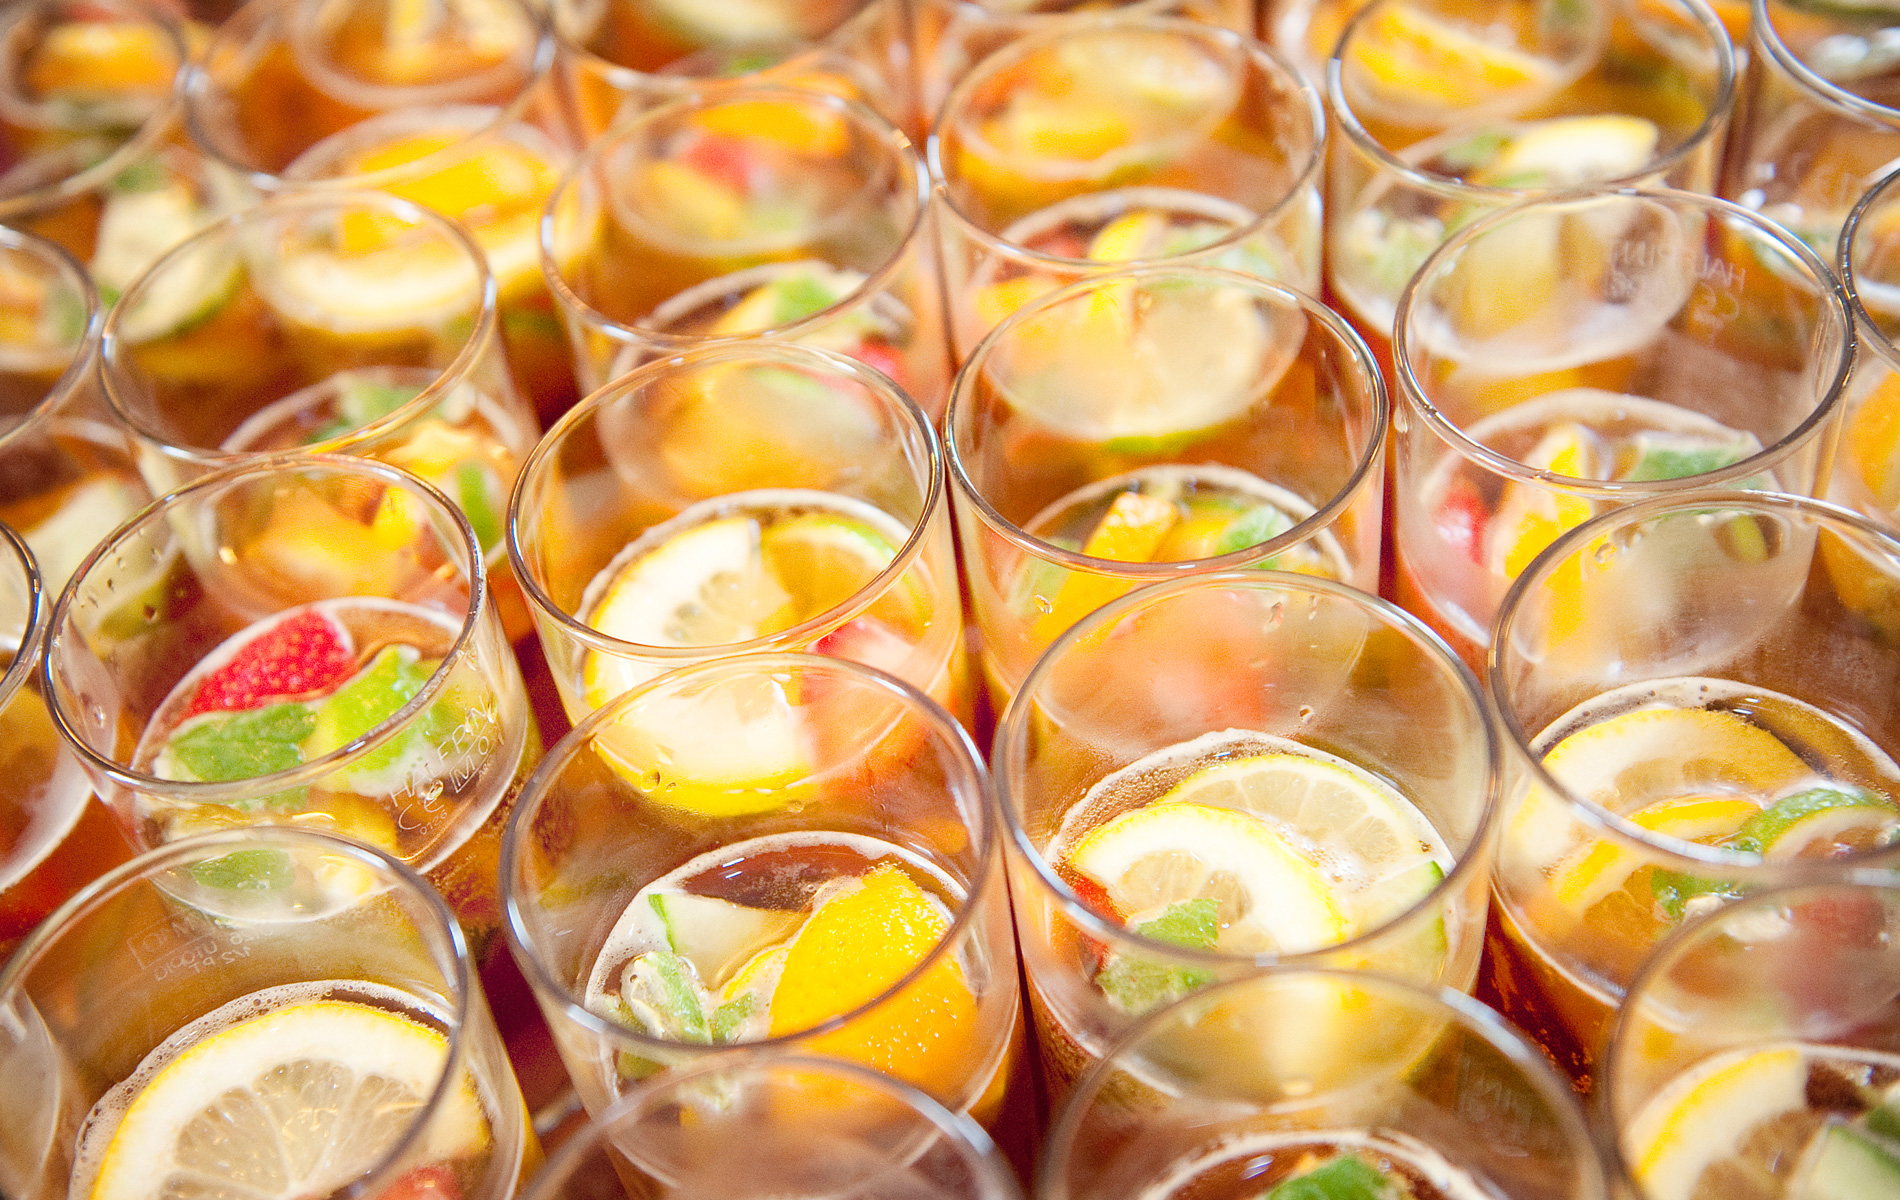 Pimms-bear-hotel-wedding-reception-cowbridge wedding photograper